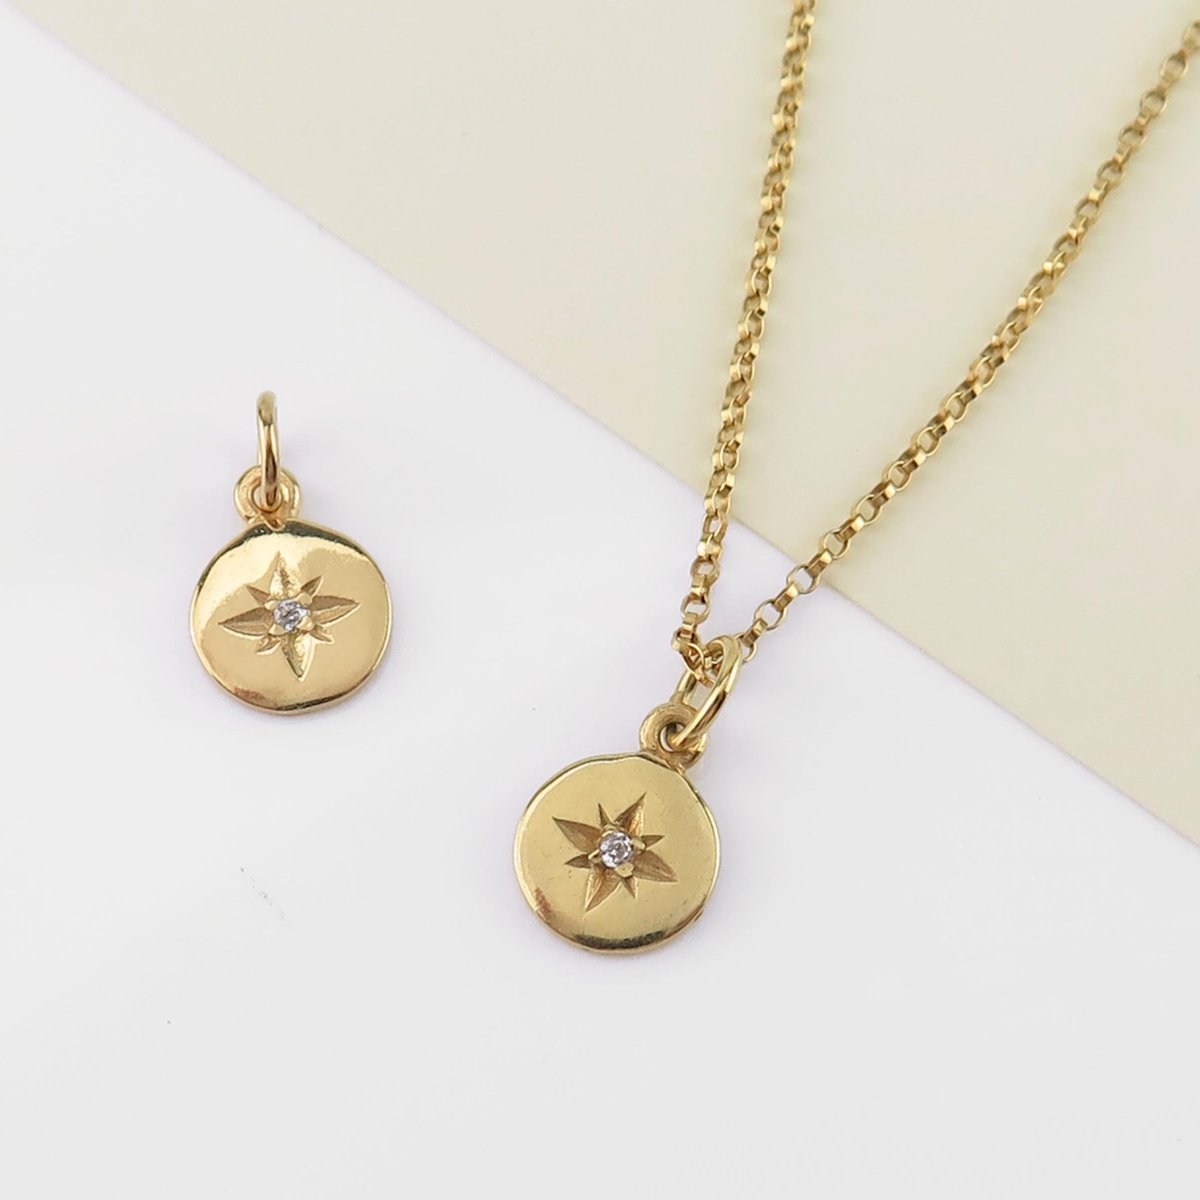 NEW ARRIVAL  We can get enough of our #PoleStar designs the latest addition is this #GoldVermeil Pole Star #Charm with #CZ 8mm  This style is reminiscent of the #VictorianEra where #diamonds were set with star designs often referred to as 'gypsy' style  What do you think? https://t.co/Uv5KfEGHSZ